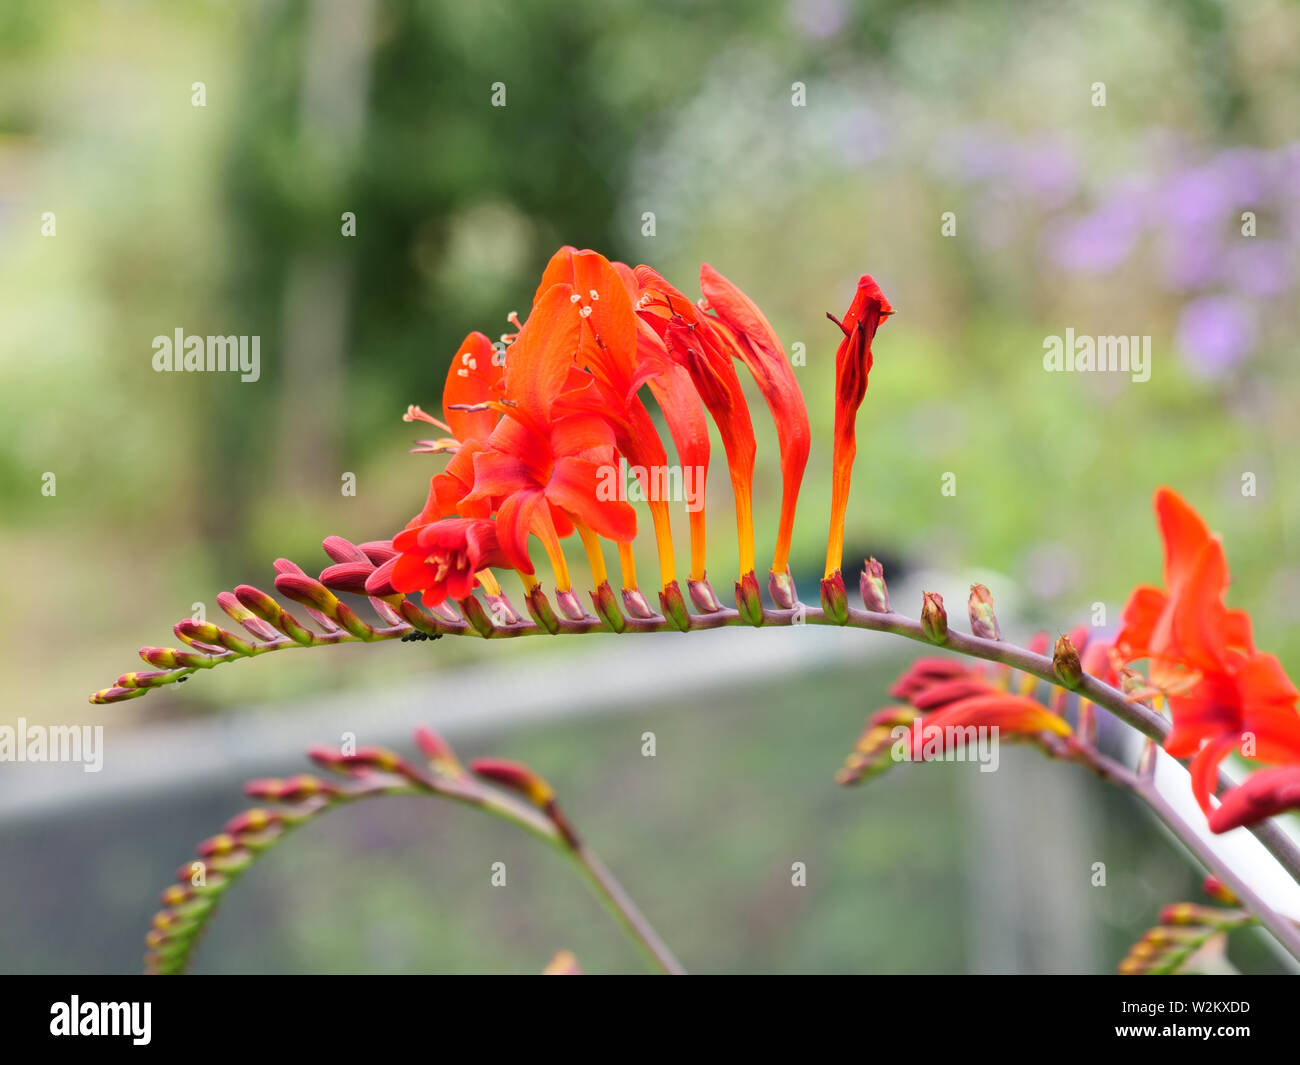 Fiery red flower of garden plant Crocosmia Lucifer, which is very good for cutting. Stock Photo